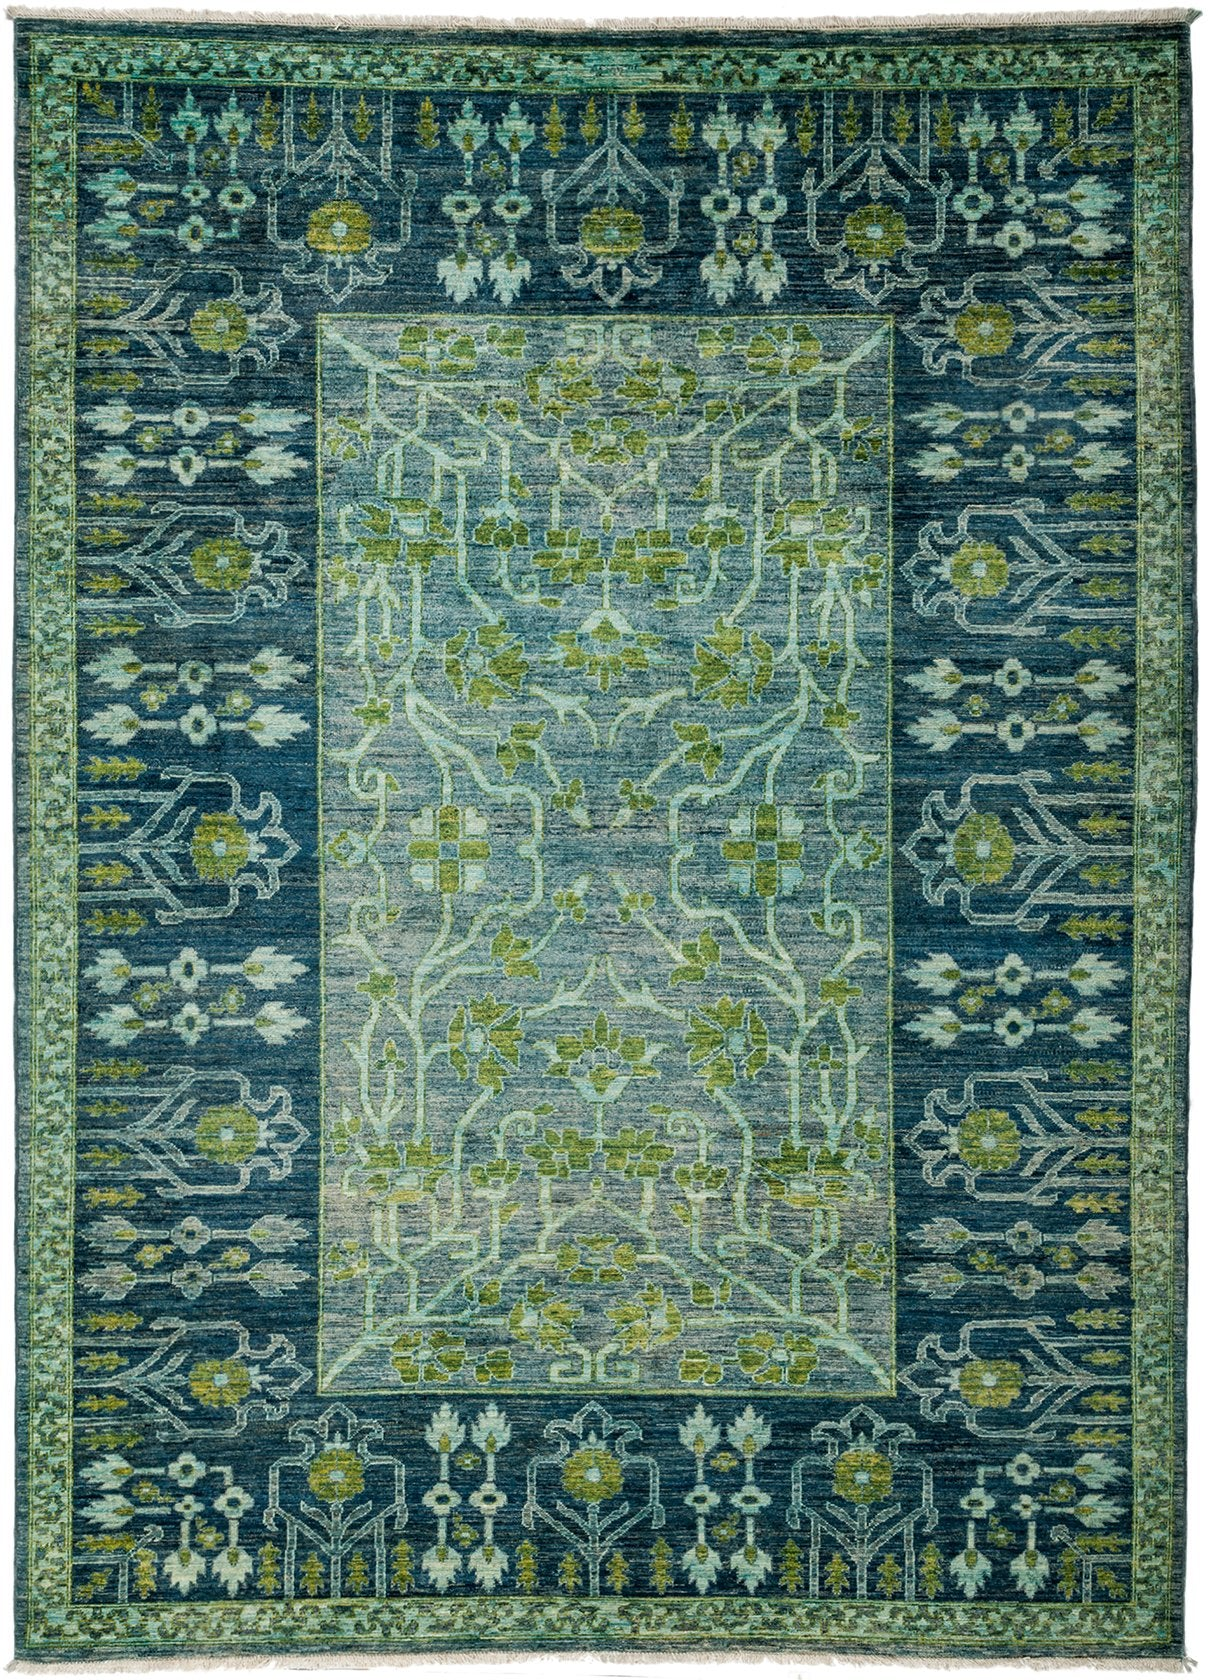 Overdyed Green Wool Area Rug 6 7 X 9 1 Lillian August